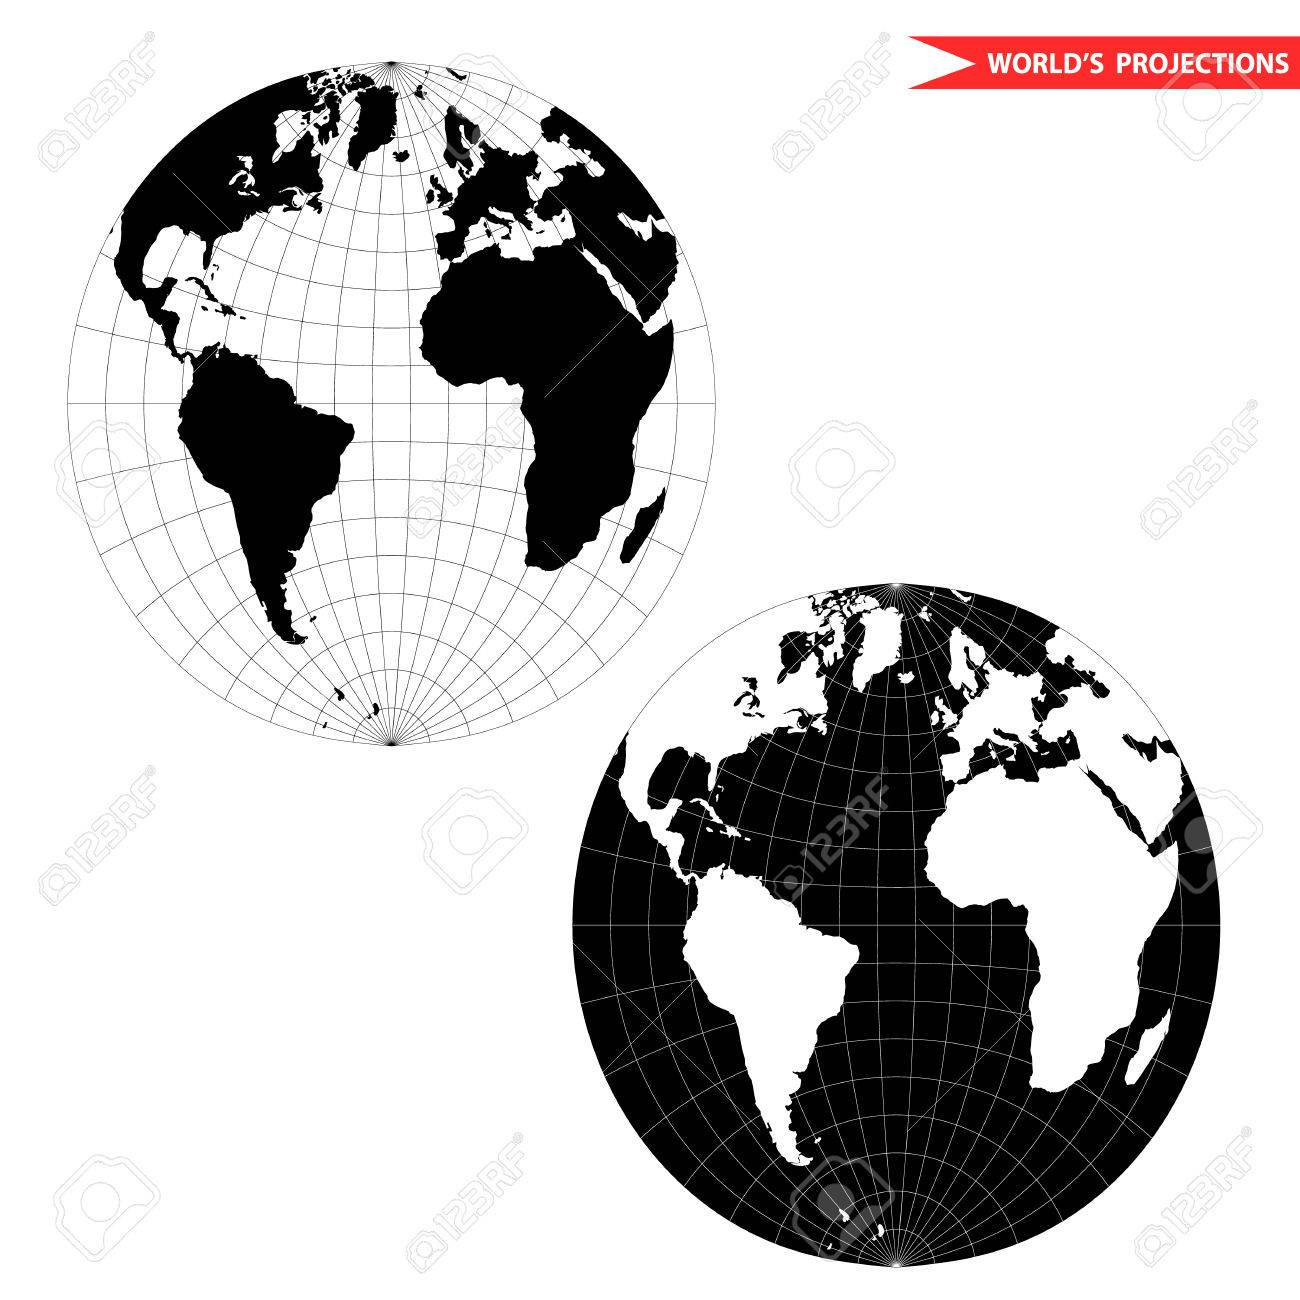 Spherical World Map Projection Black And White World Map